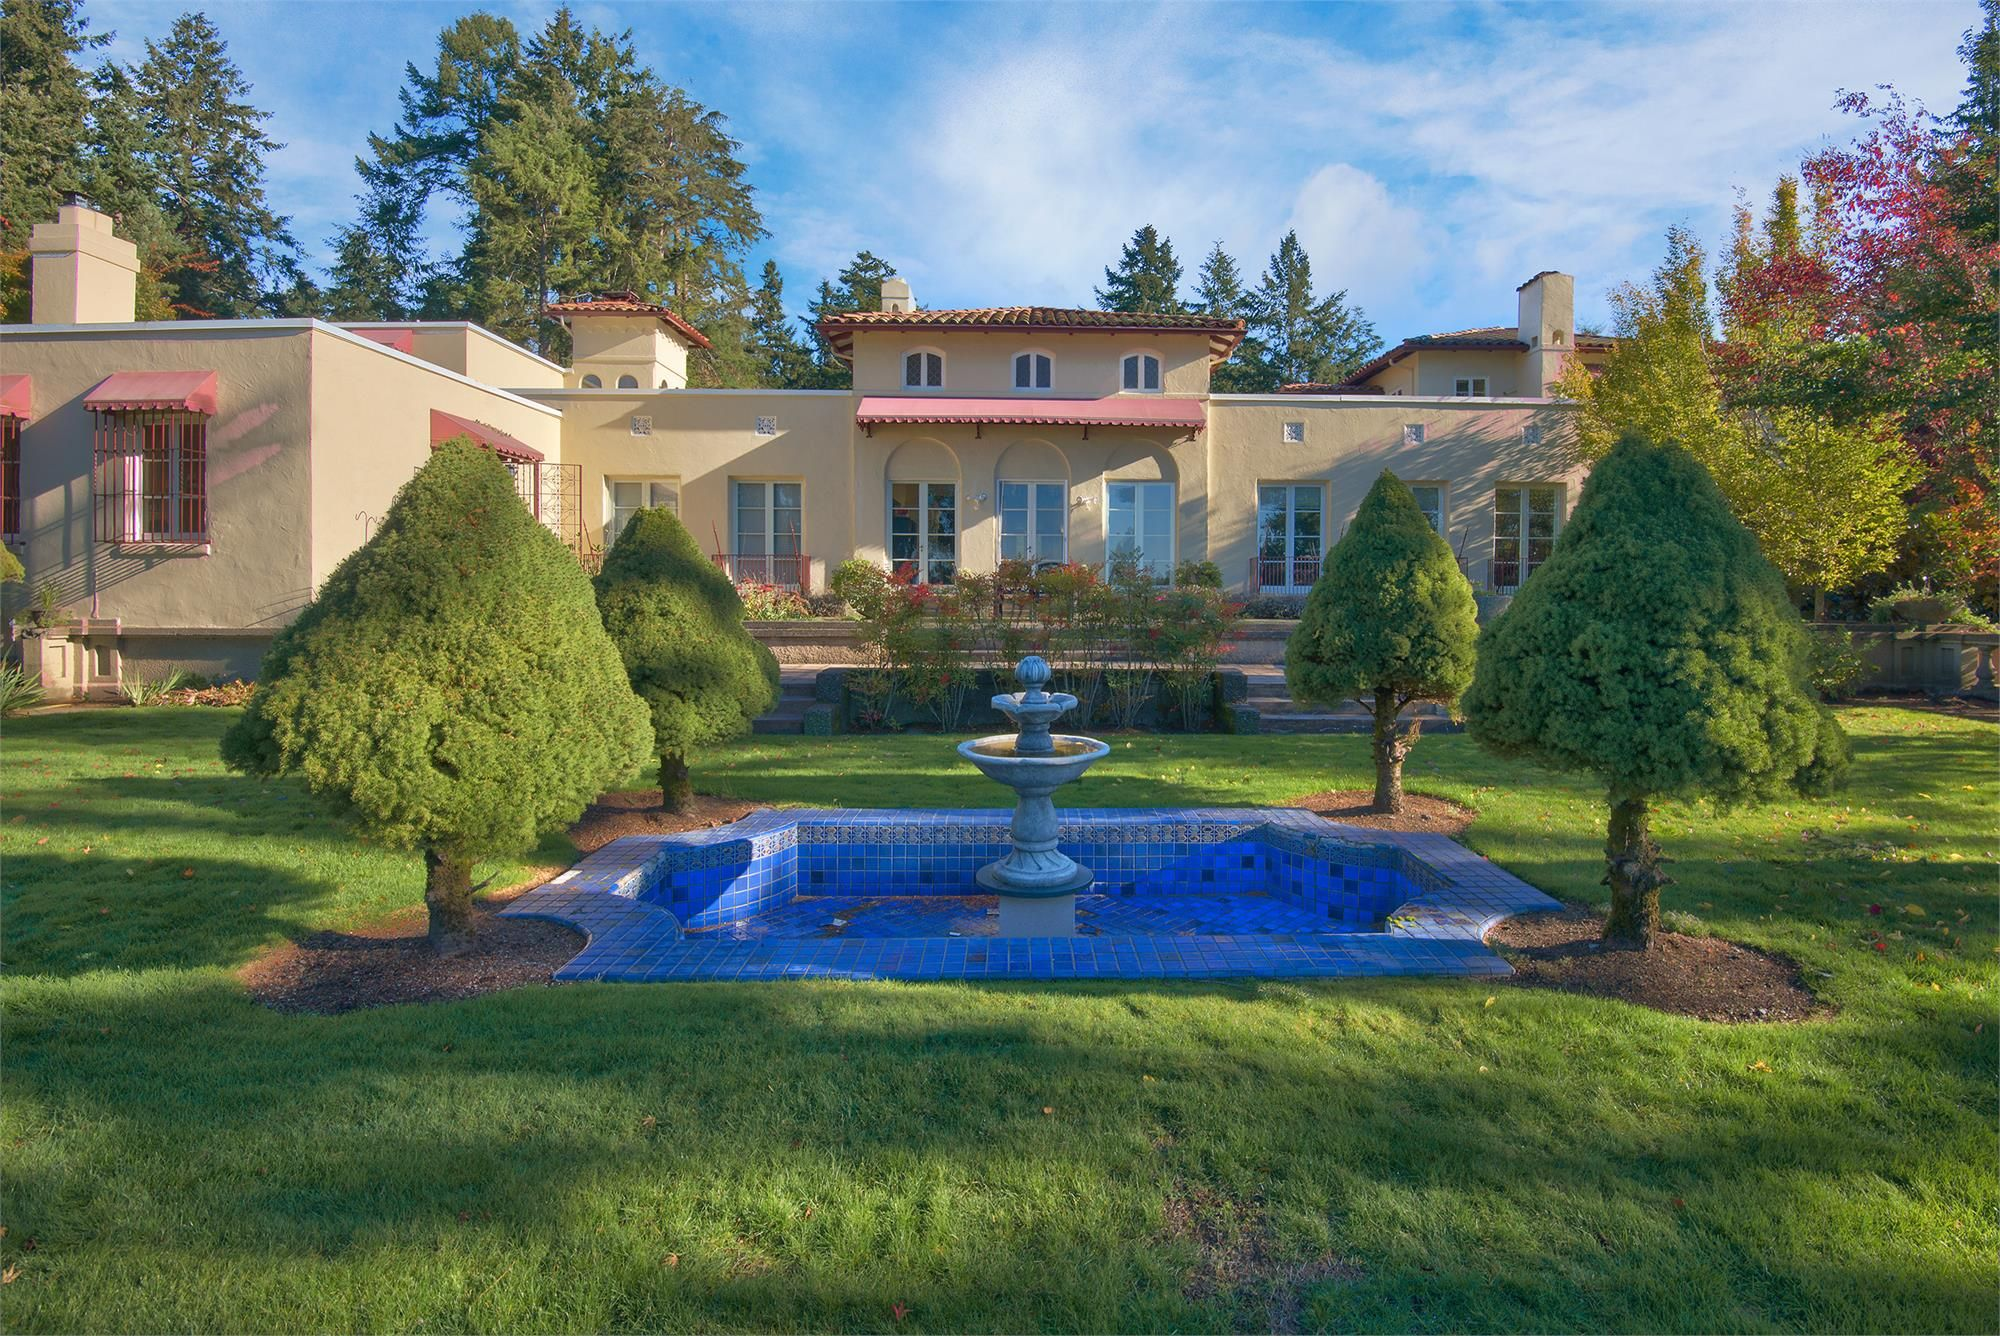 terraced backyard and fountain sold american lake estate